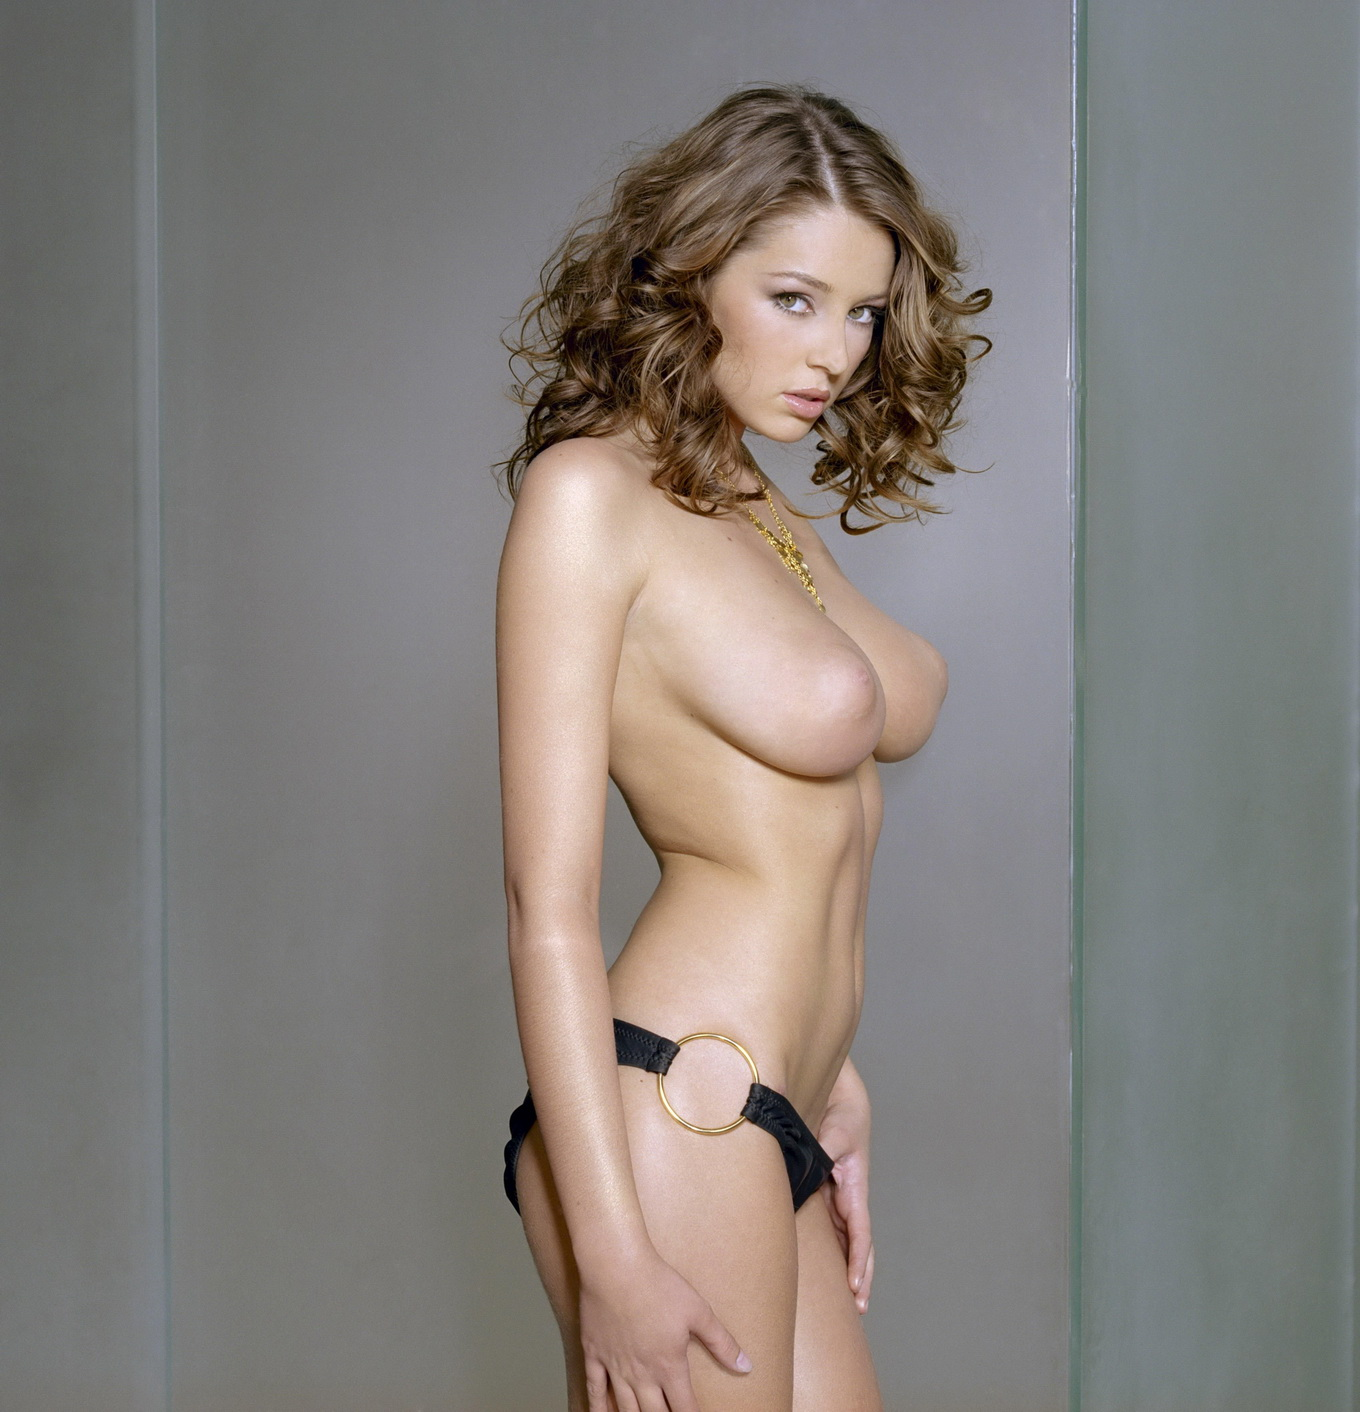 Share your Keeley hazell lingerie